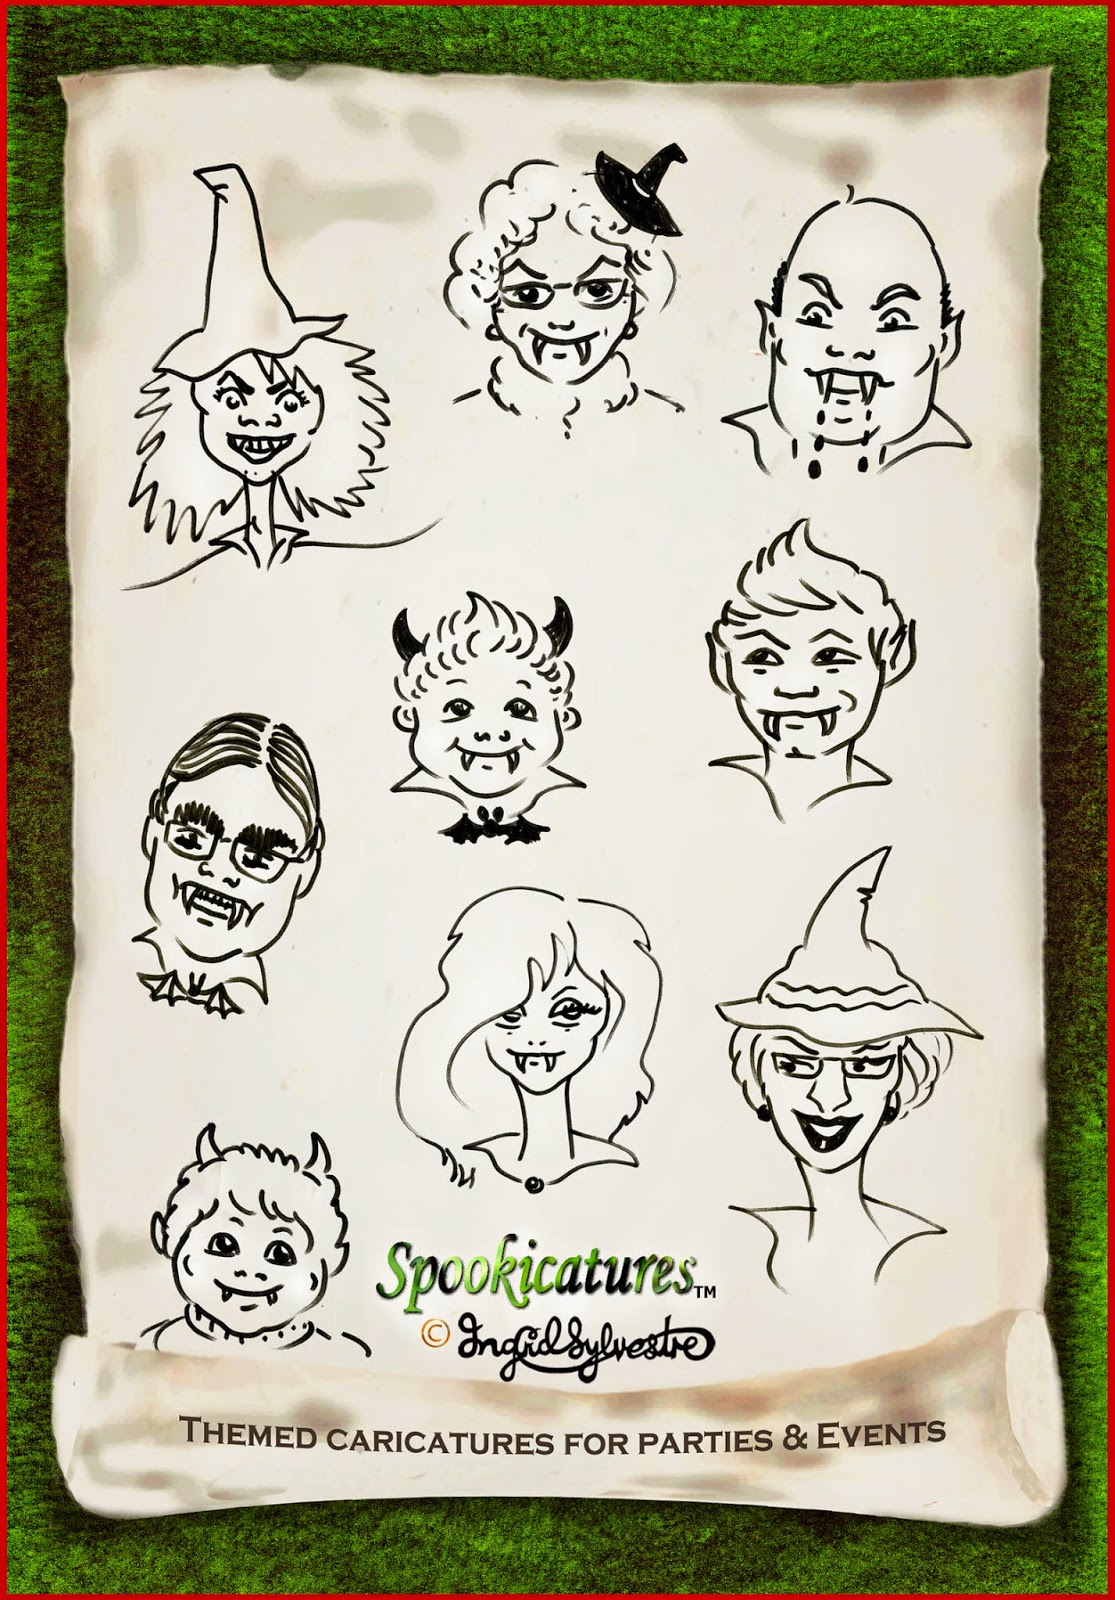 North East Caricaturist Ingrid Sylvestre Spookicatures Hallowe'en Caricatures Hallowe'en Entertainment North East UK Durham Newcastle Sunderland Middlesbrough Teesside Northumberland